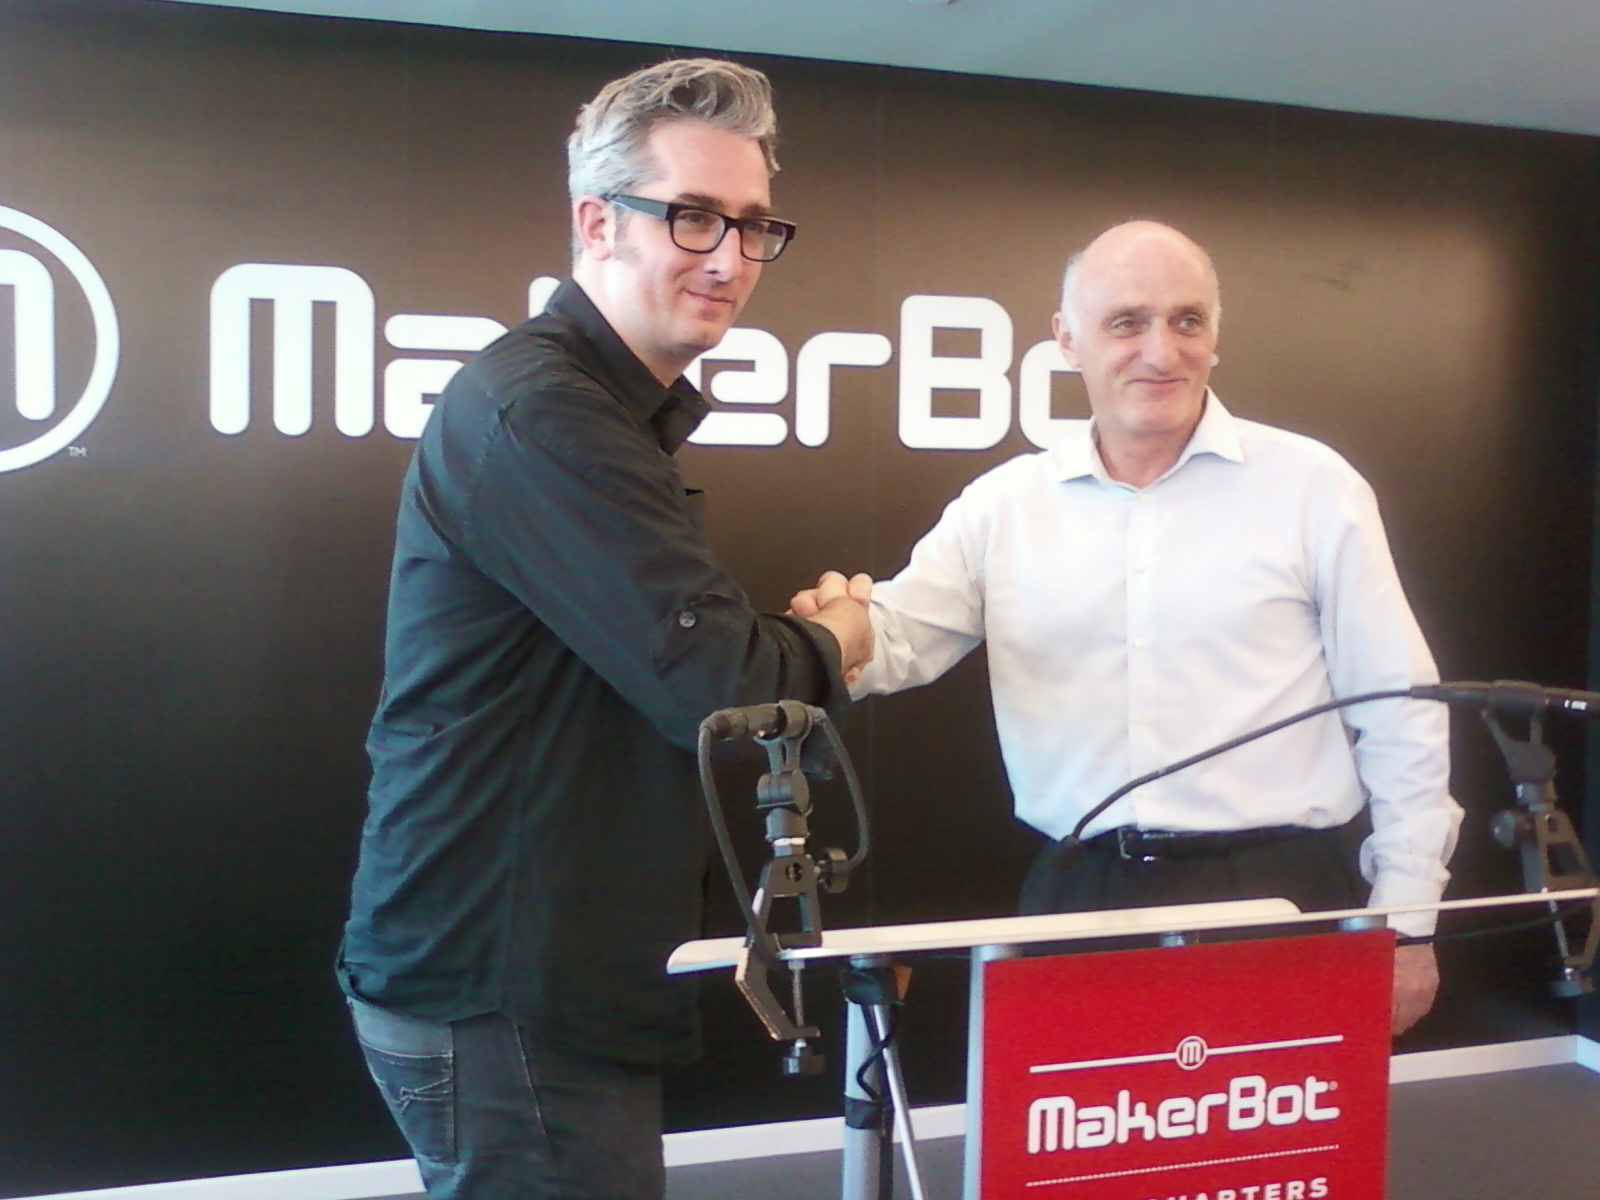 Bre Pettis of MakerBot Shakes hands with David Rice of Stratasys